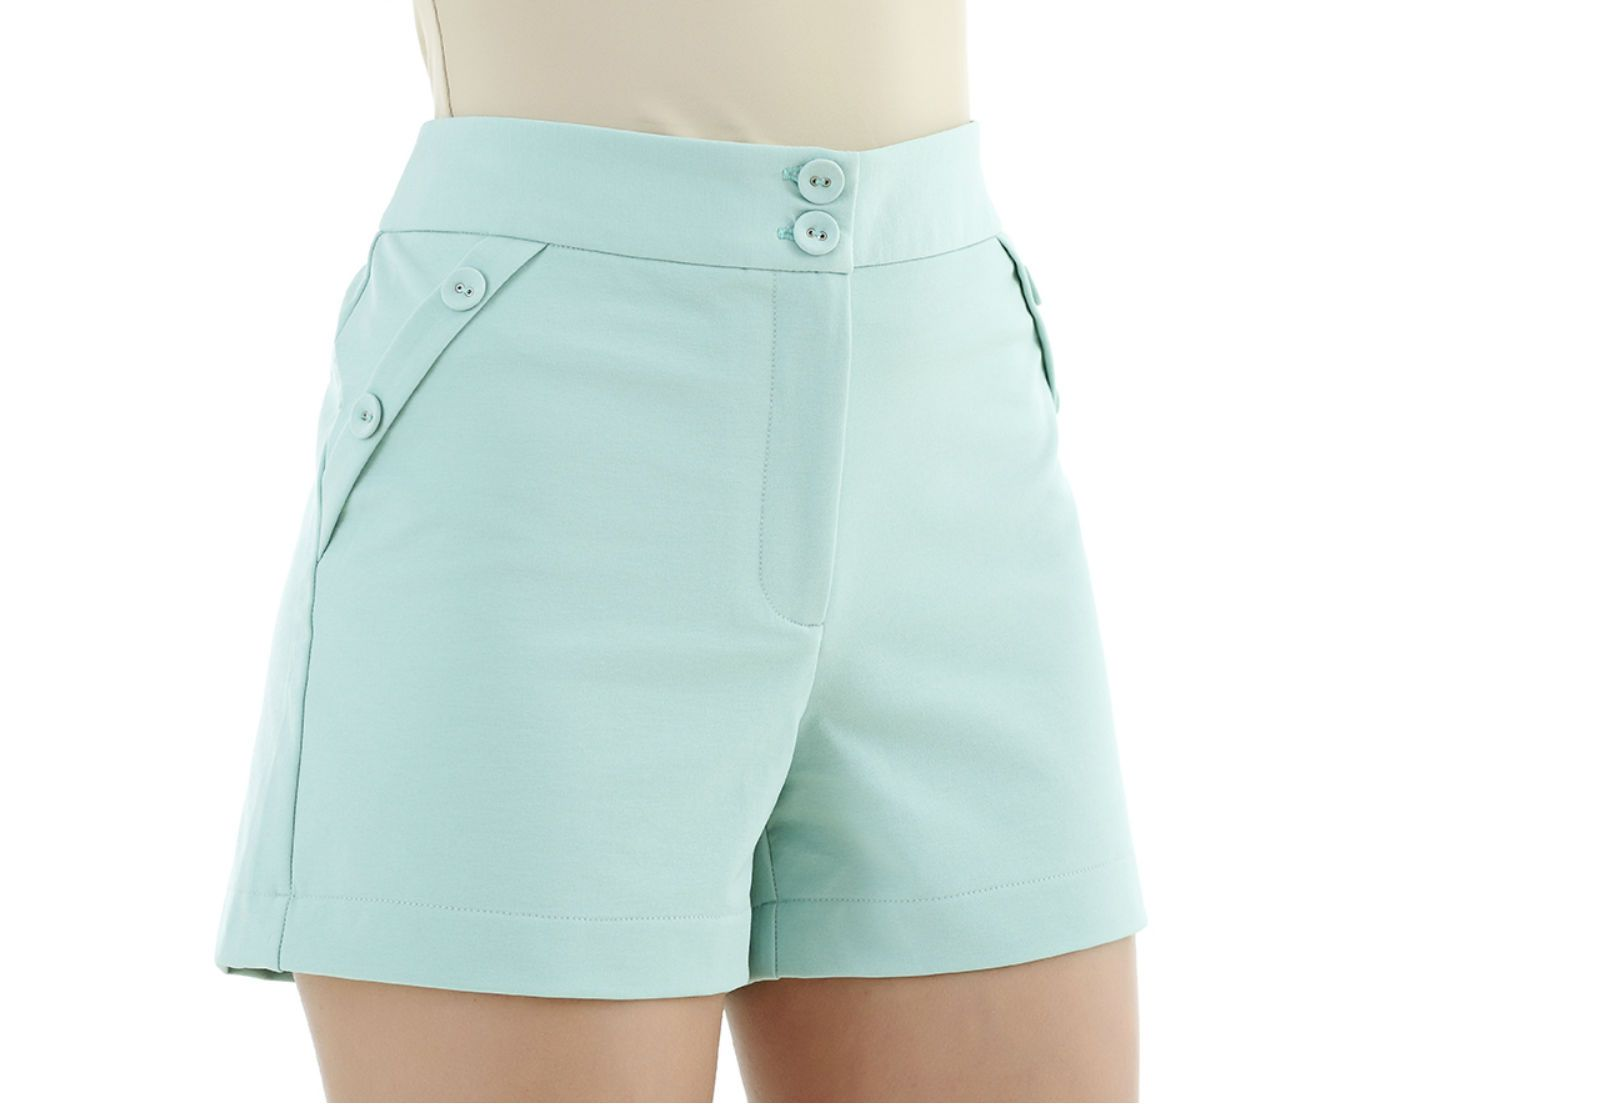 Shorts verde Unique Chic